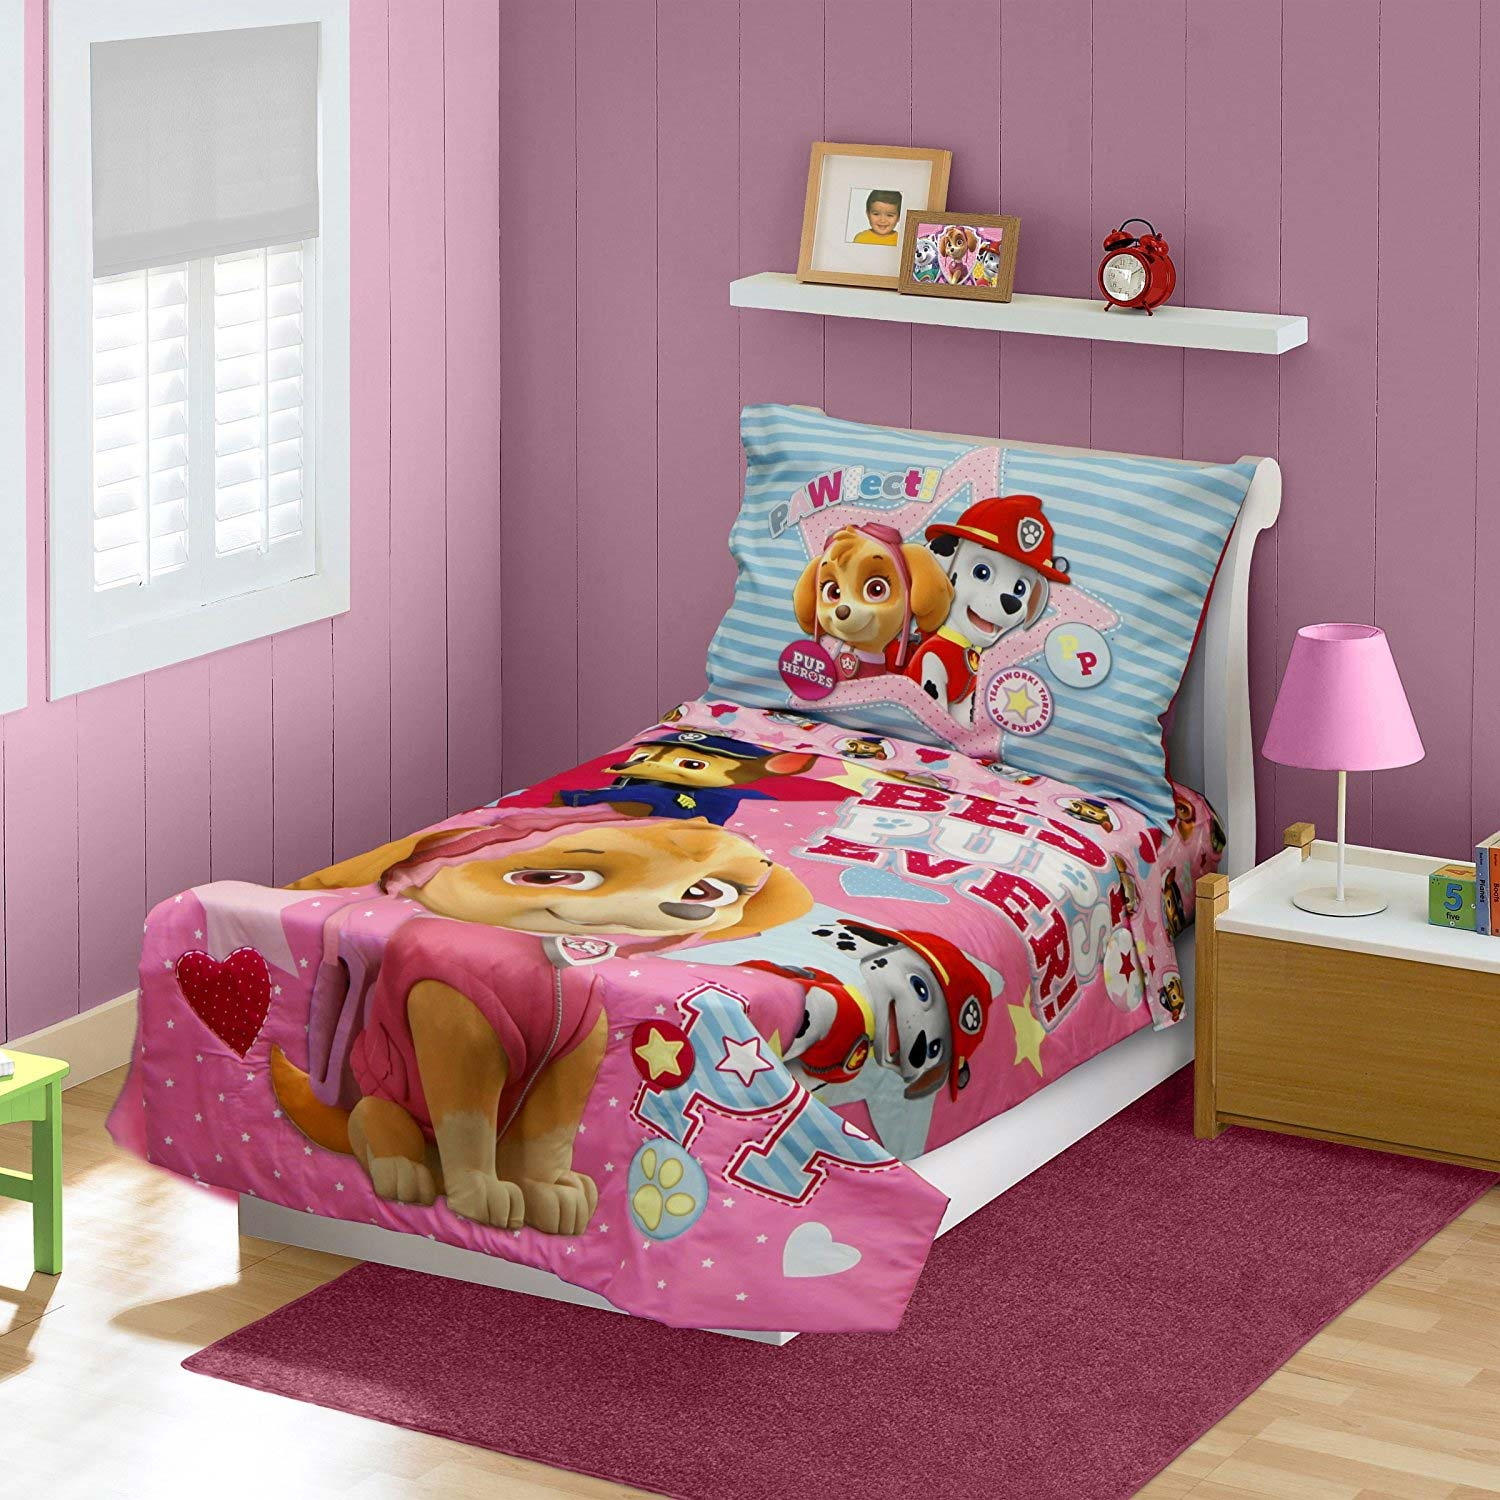 Paw Patrol Toddler Bedding Set - 4pc Best Pups Ever Comforter And Sheets